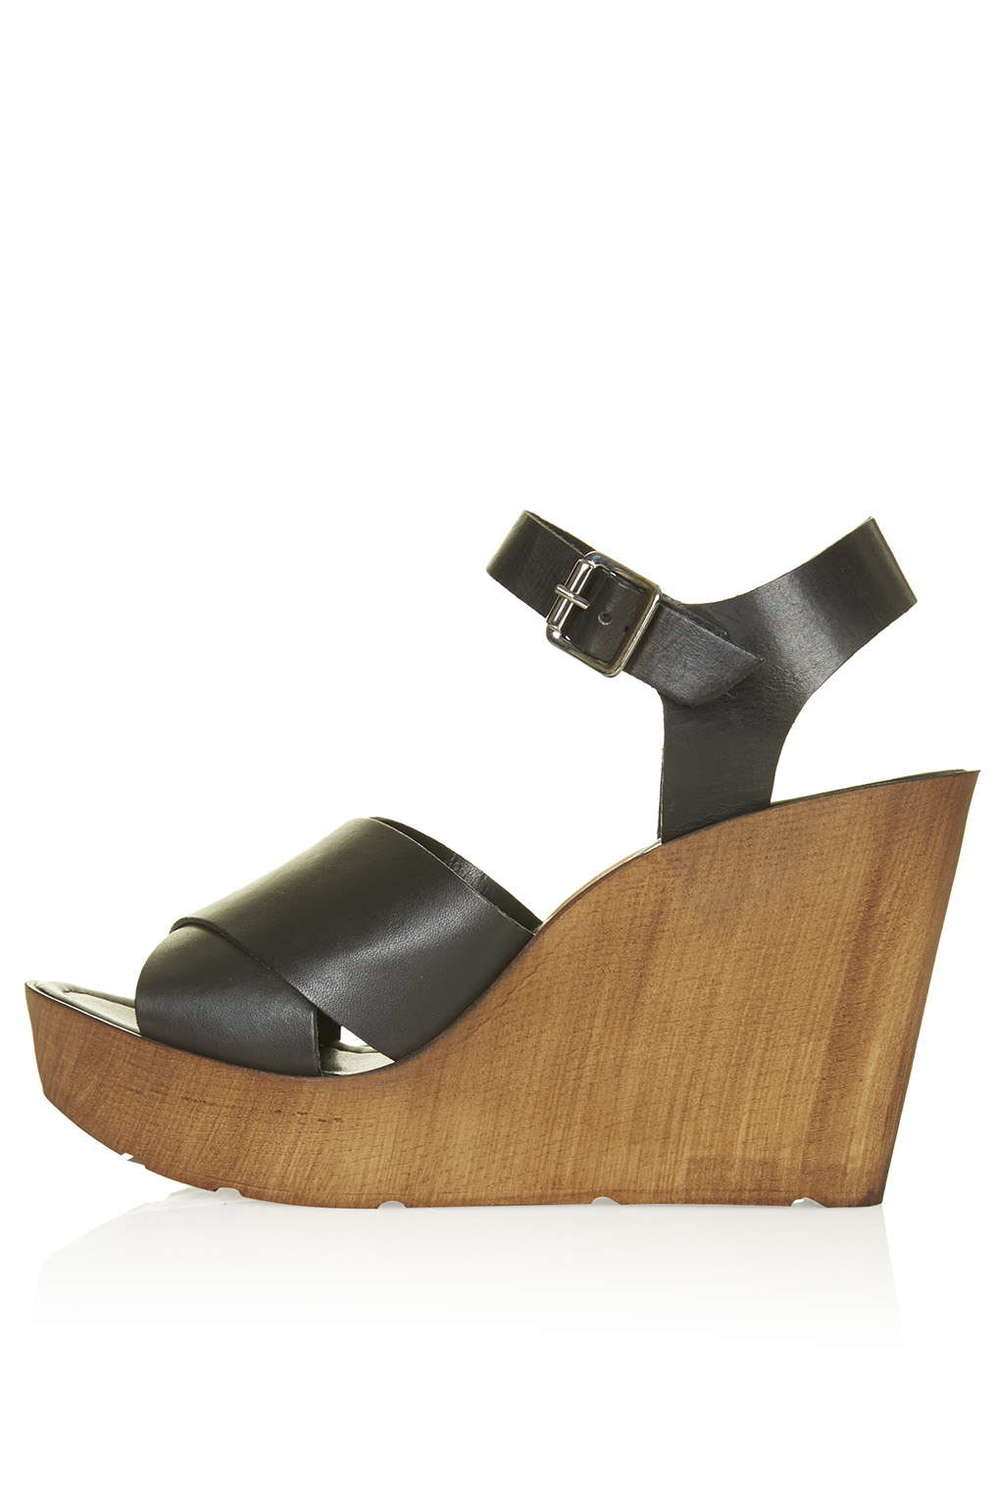 WORLDIE Wedge Sandals topshop black wood platform